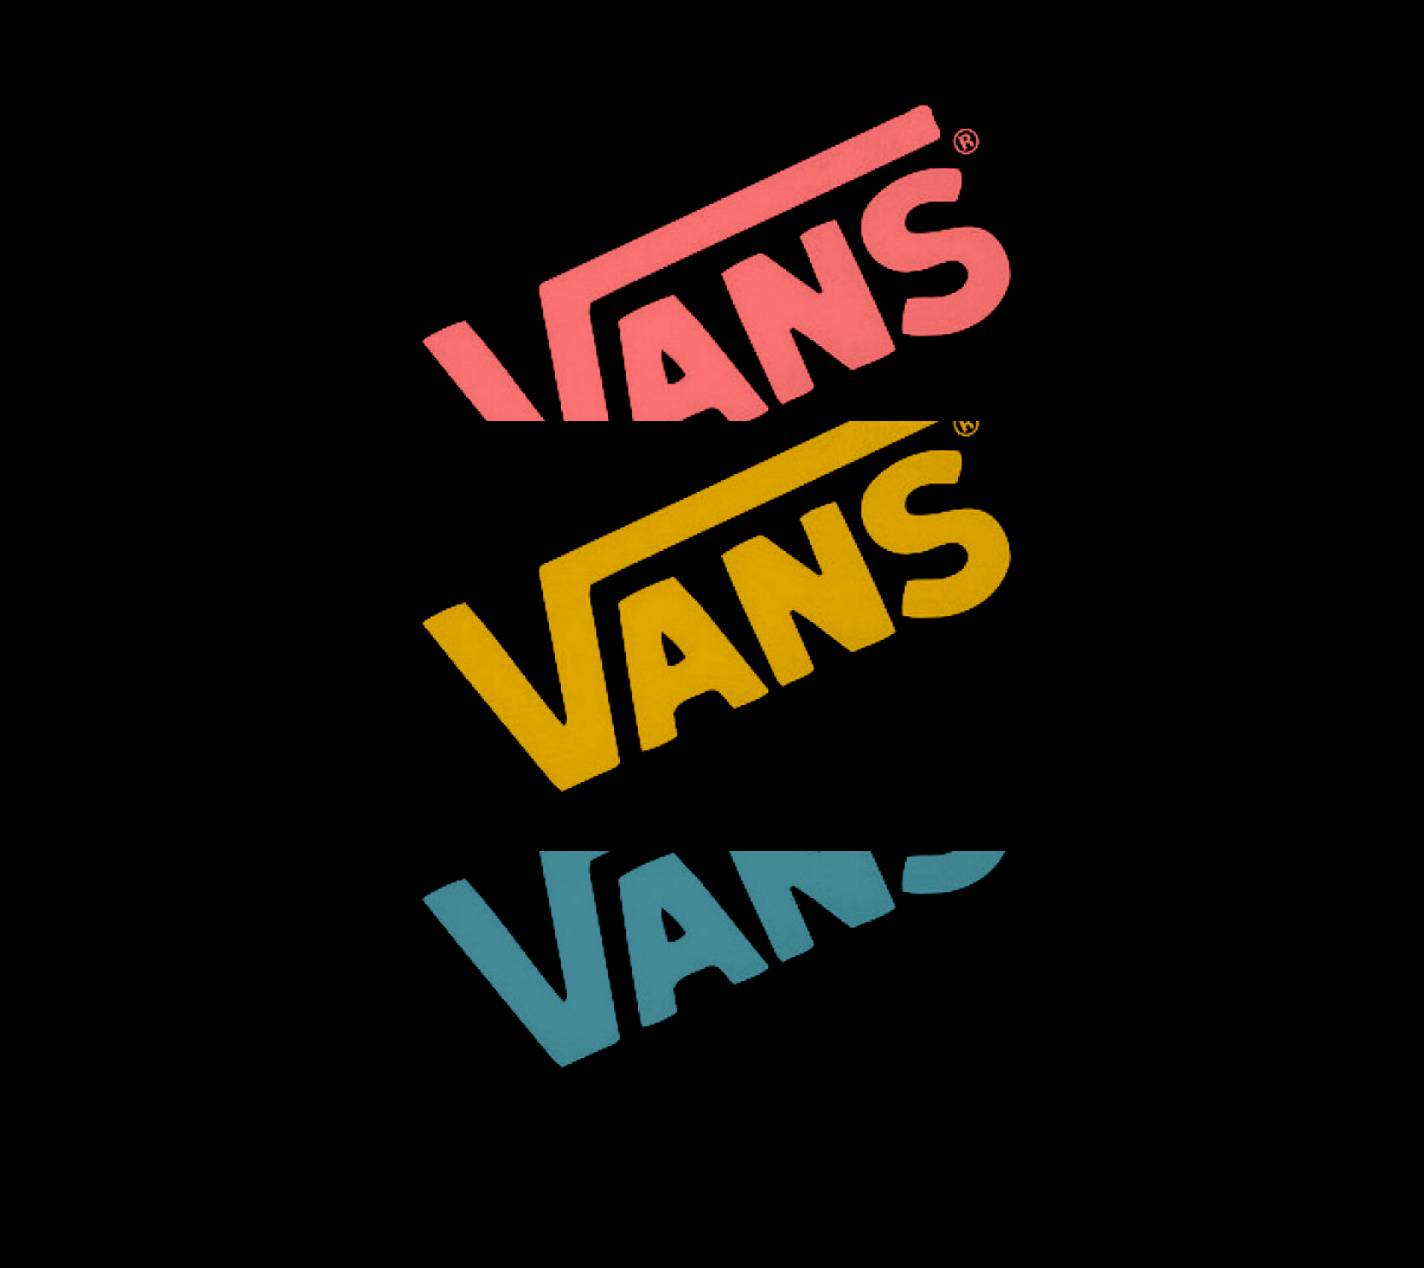 Download free vans off the wall wallpapers for your mobile phone